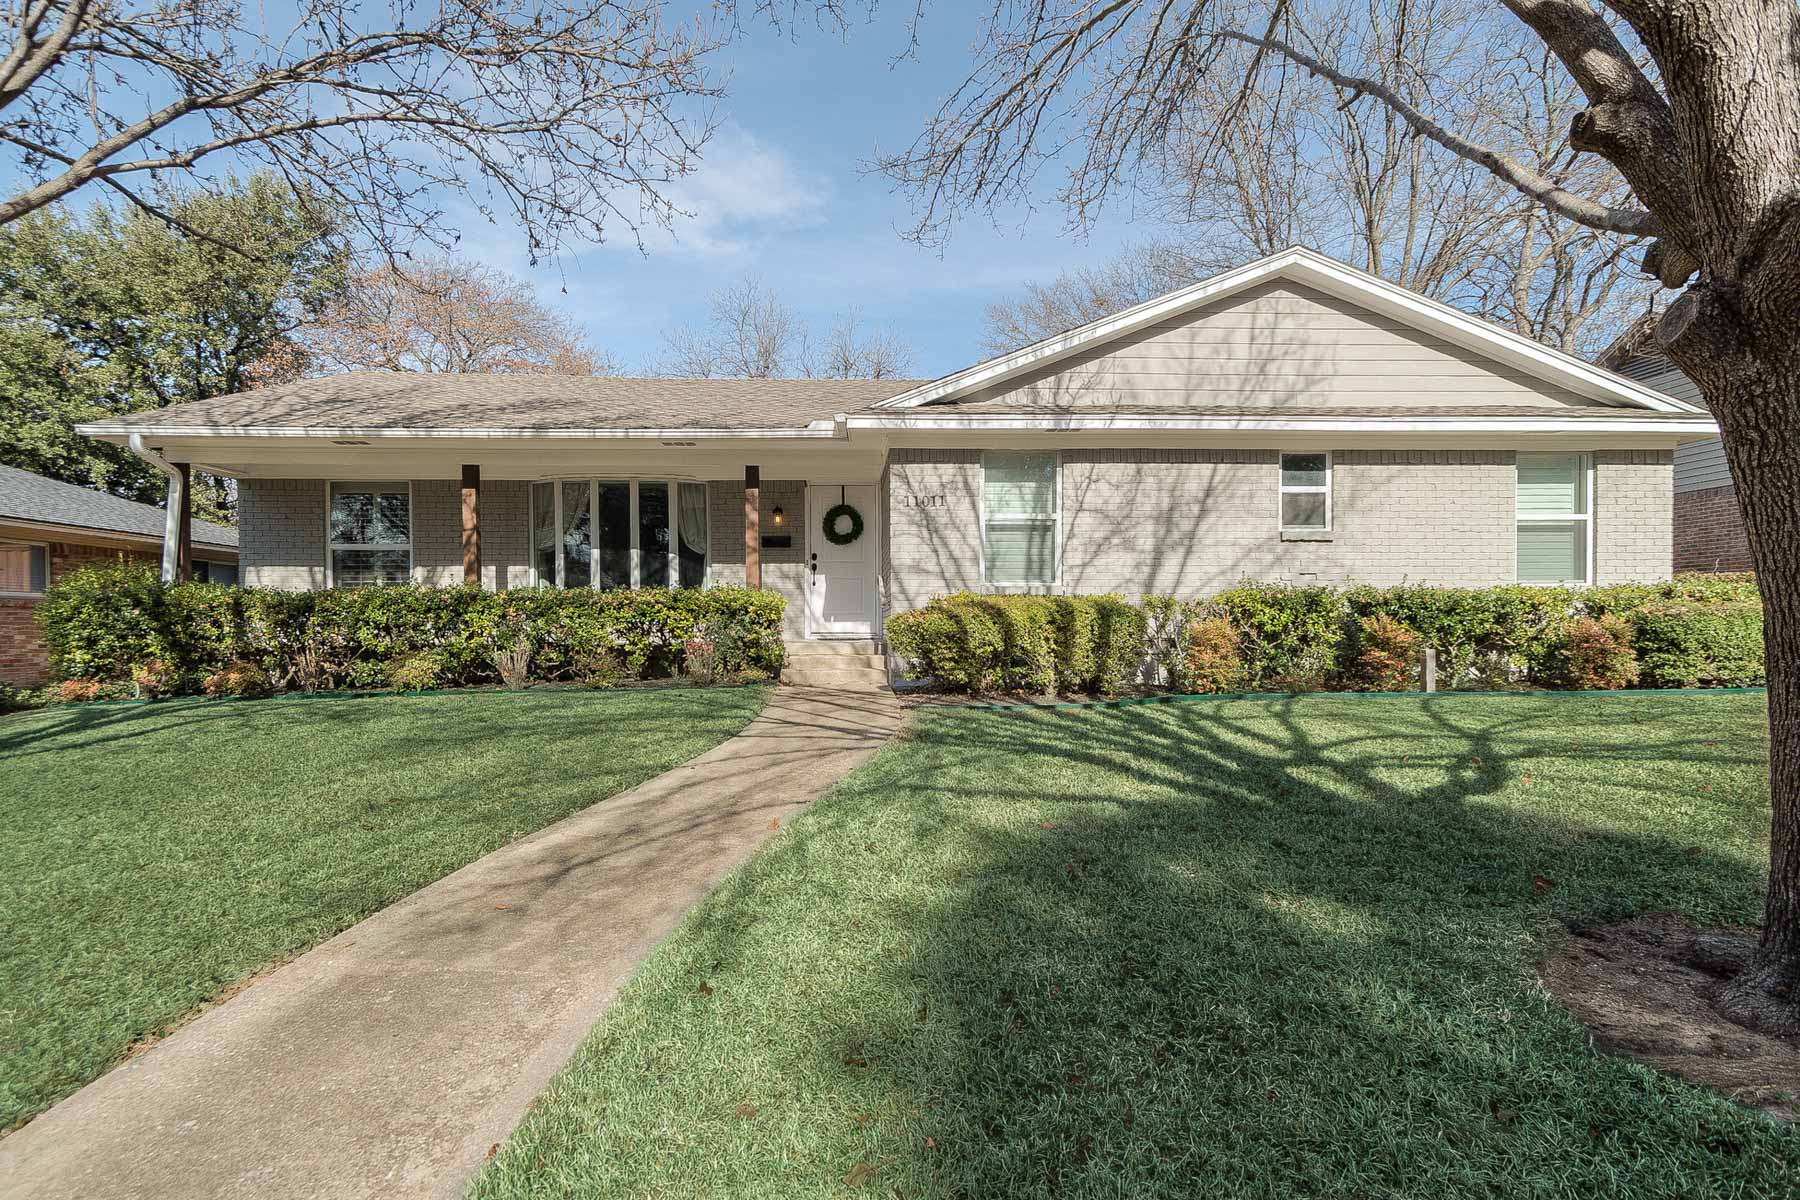 Single Family Home for Rent at Lochwood Meadows Traditional For Lease 11011 Scotsmeadow Drive Dallas, Texas 75218 United States